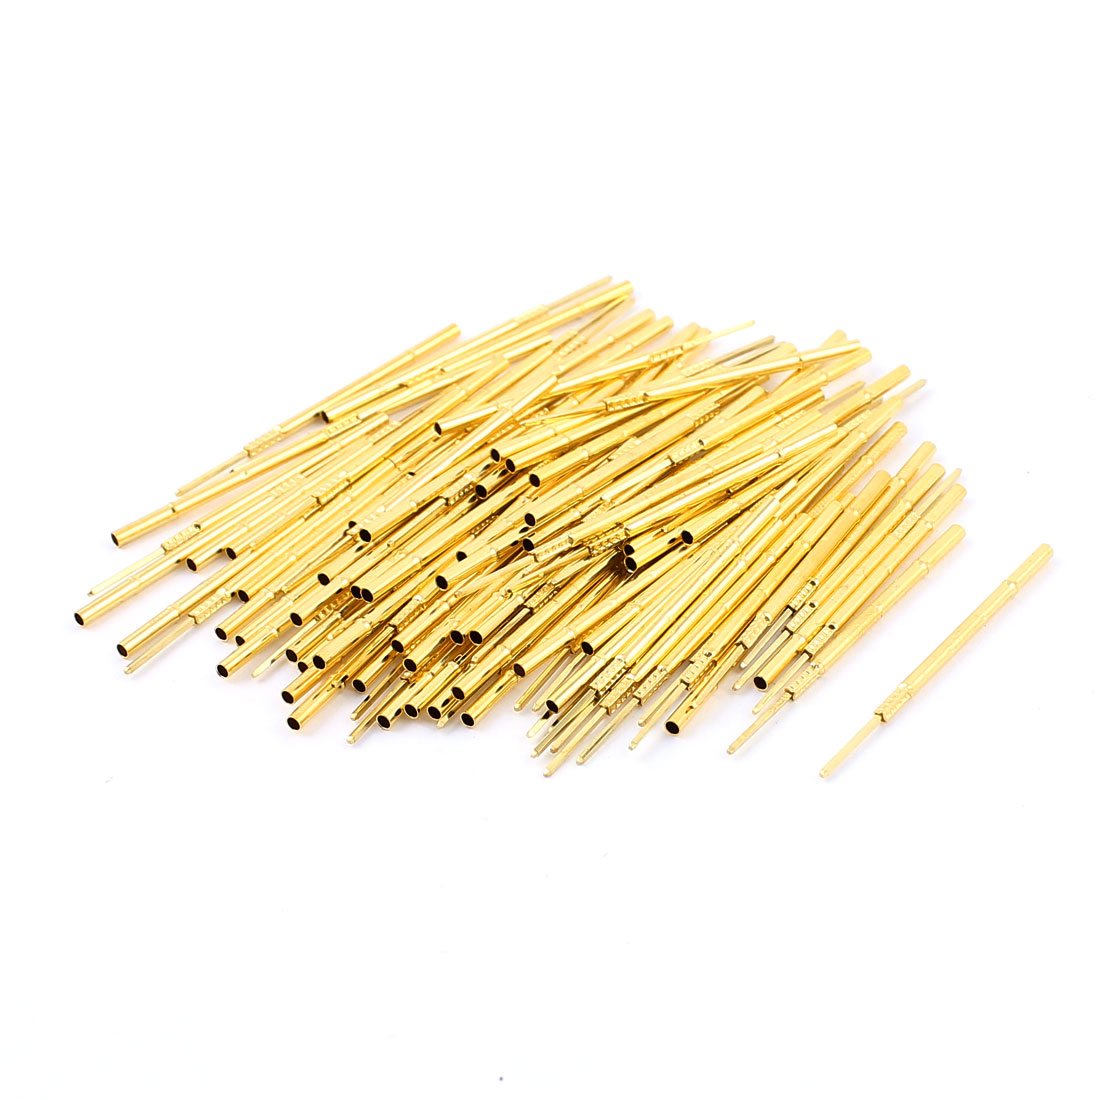 P100-4W 40mm Length Metal Test Probe Receptacle Gold Tone 100pcs